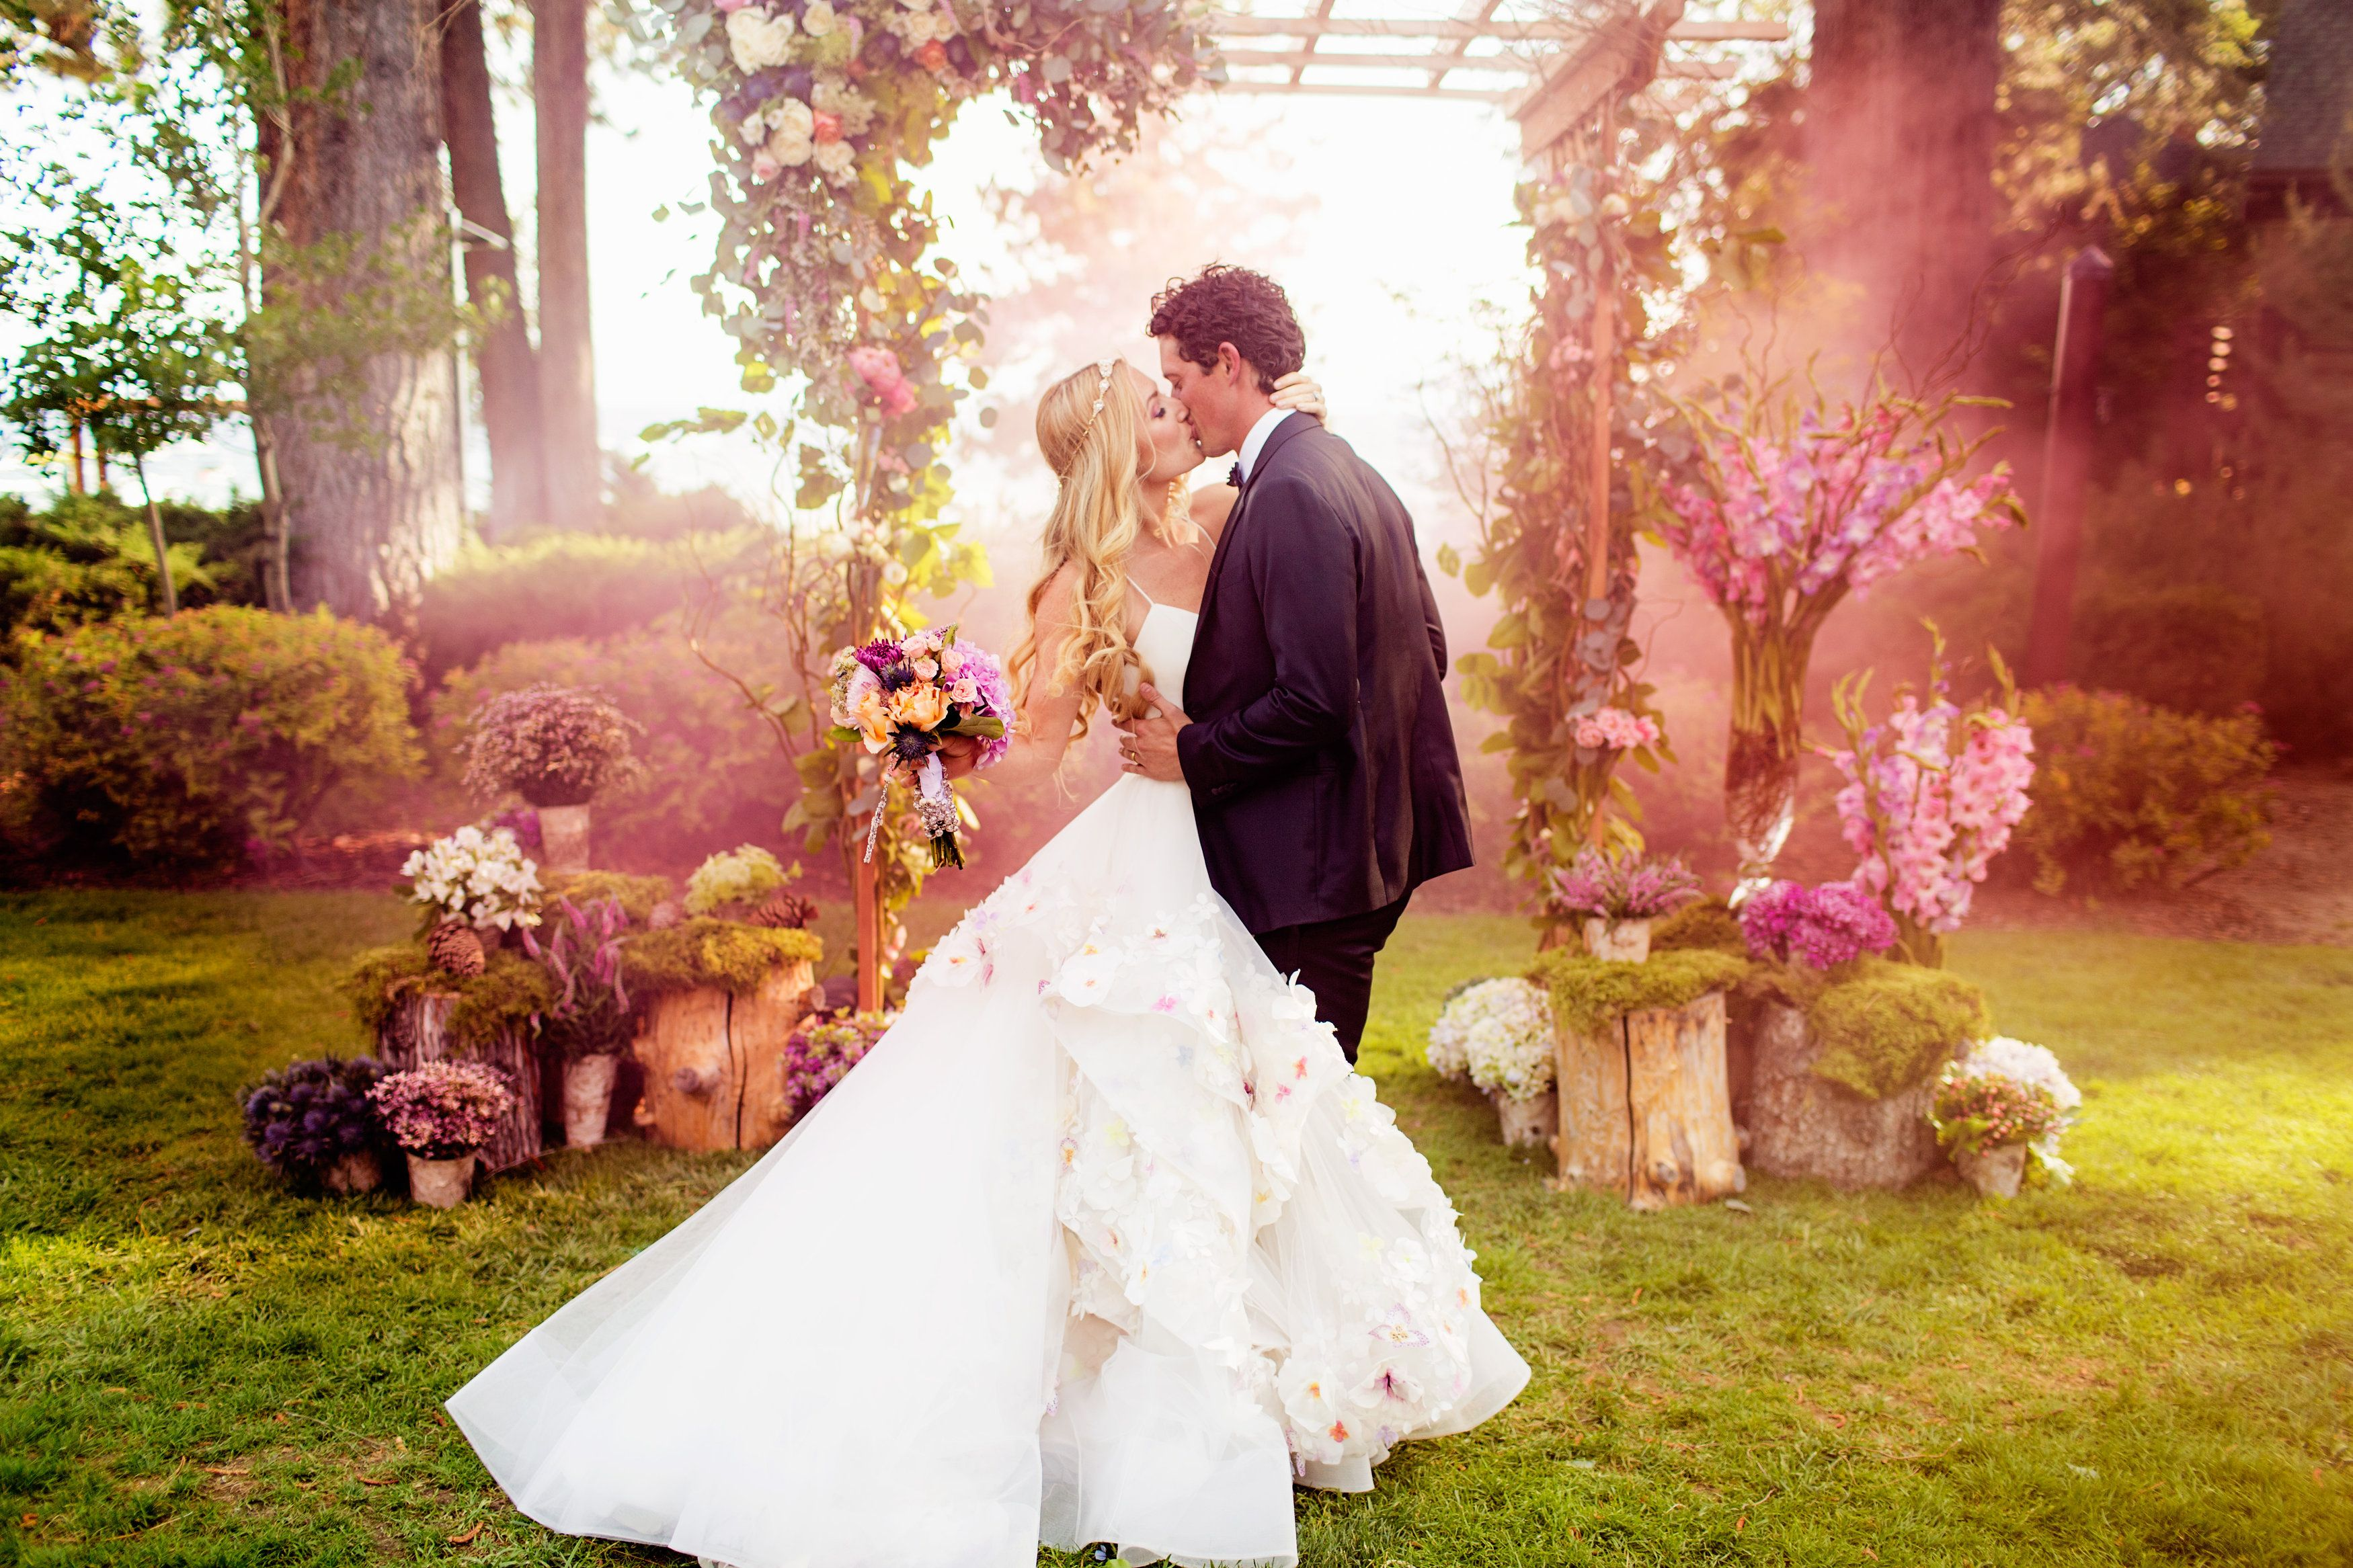 Wedding Dress Shopping What To Know Before Buying A Wedding Dress